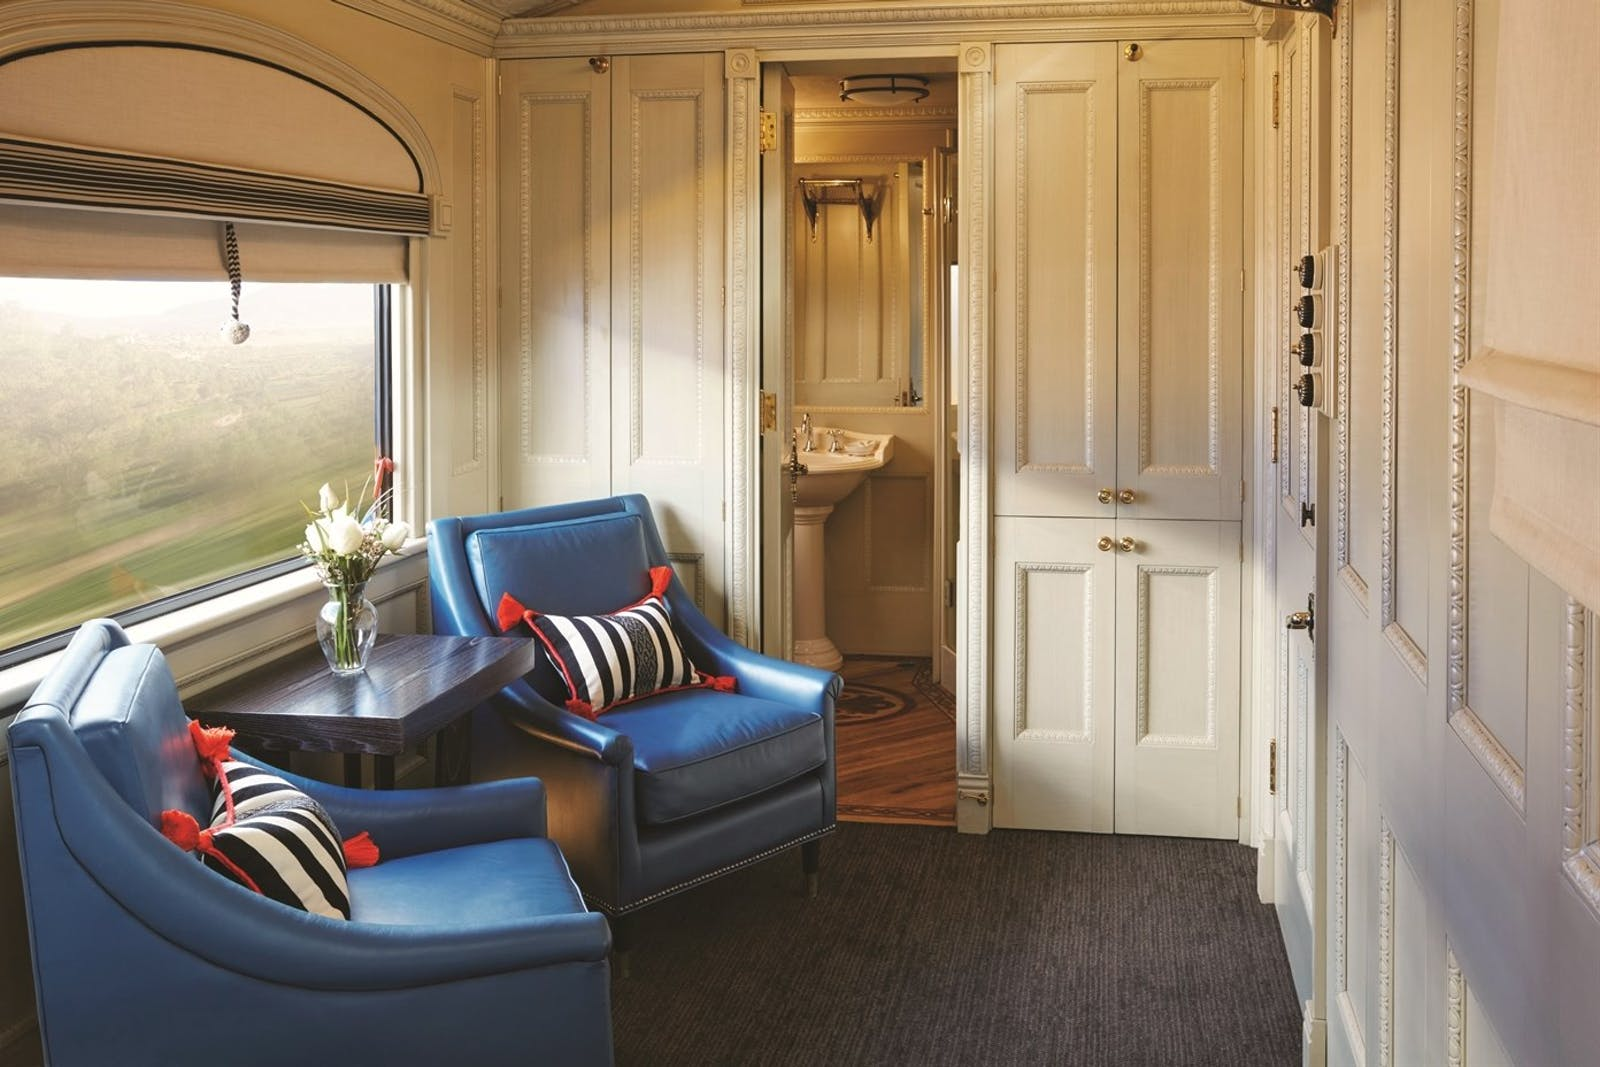 interior of cabin, Belmond Sleeper Train - Andean Explorer